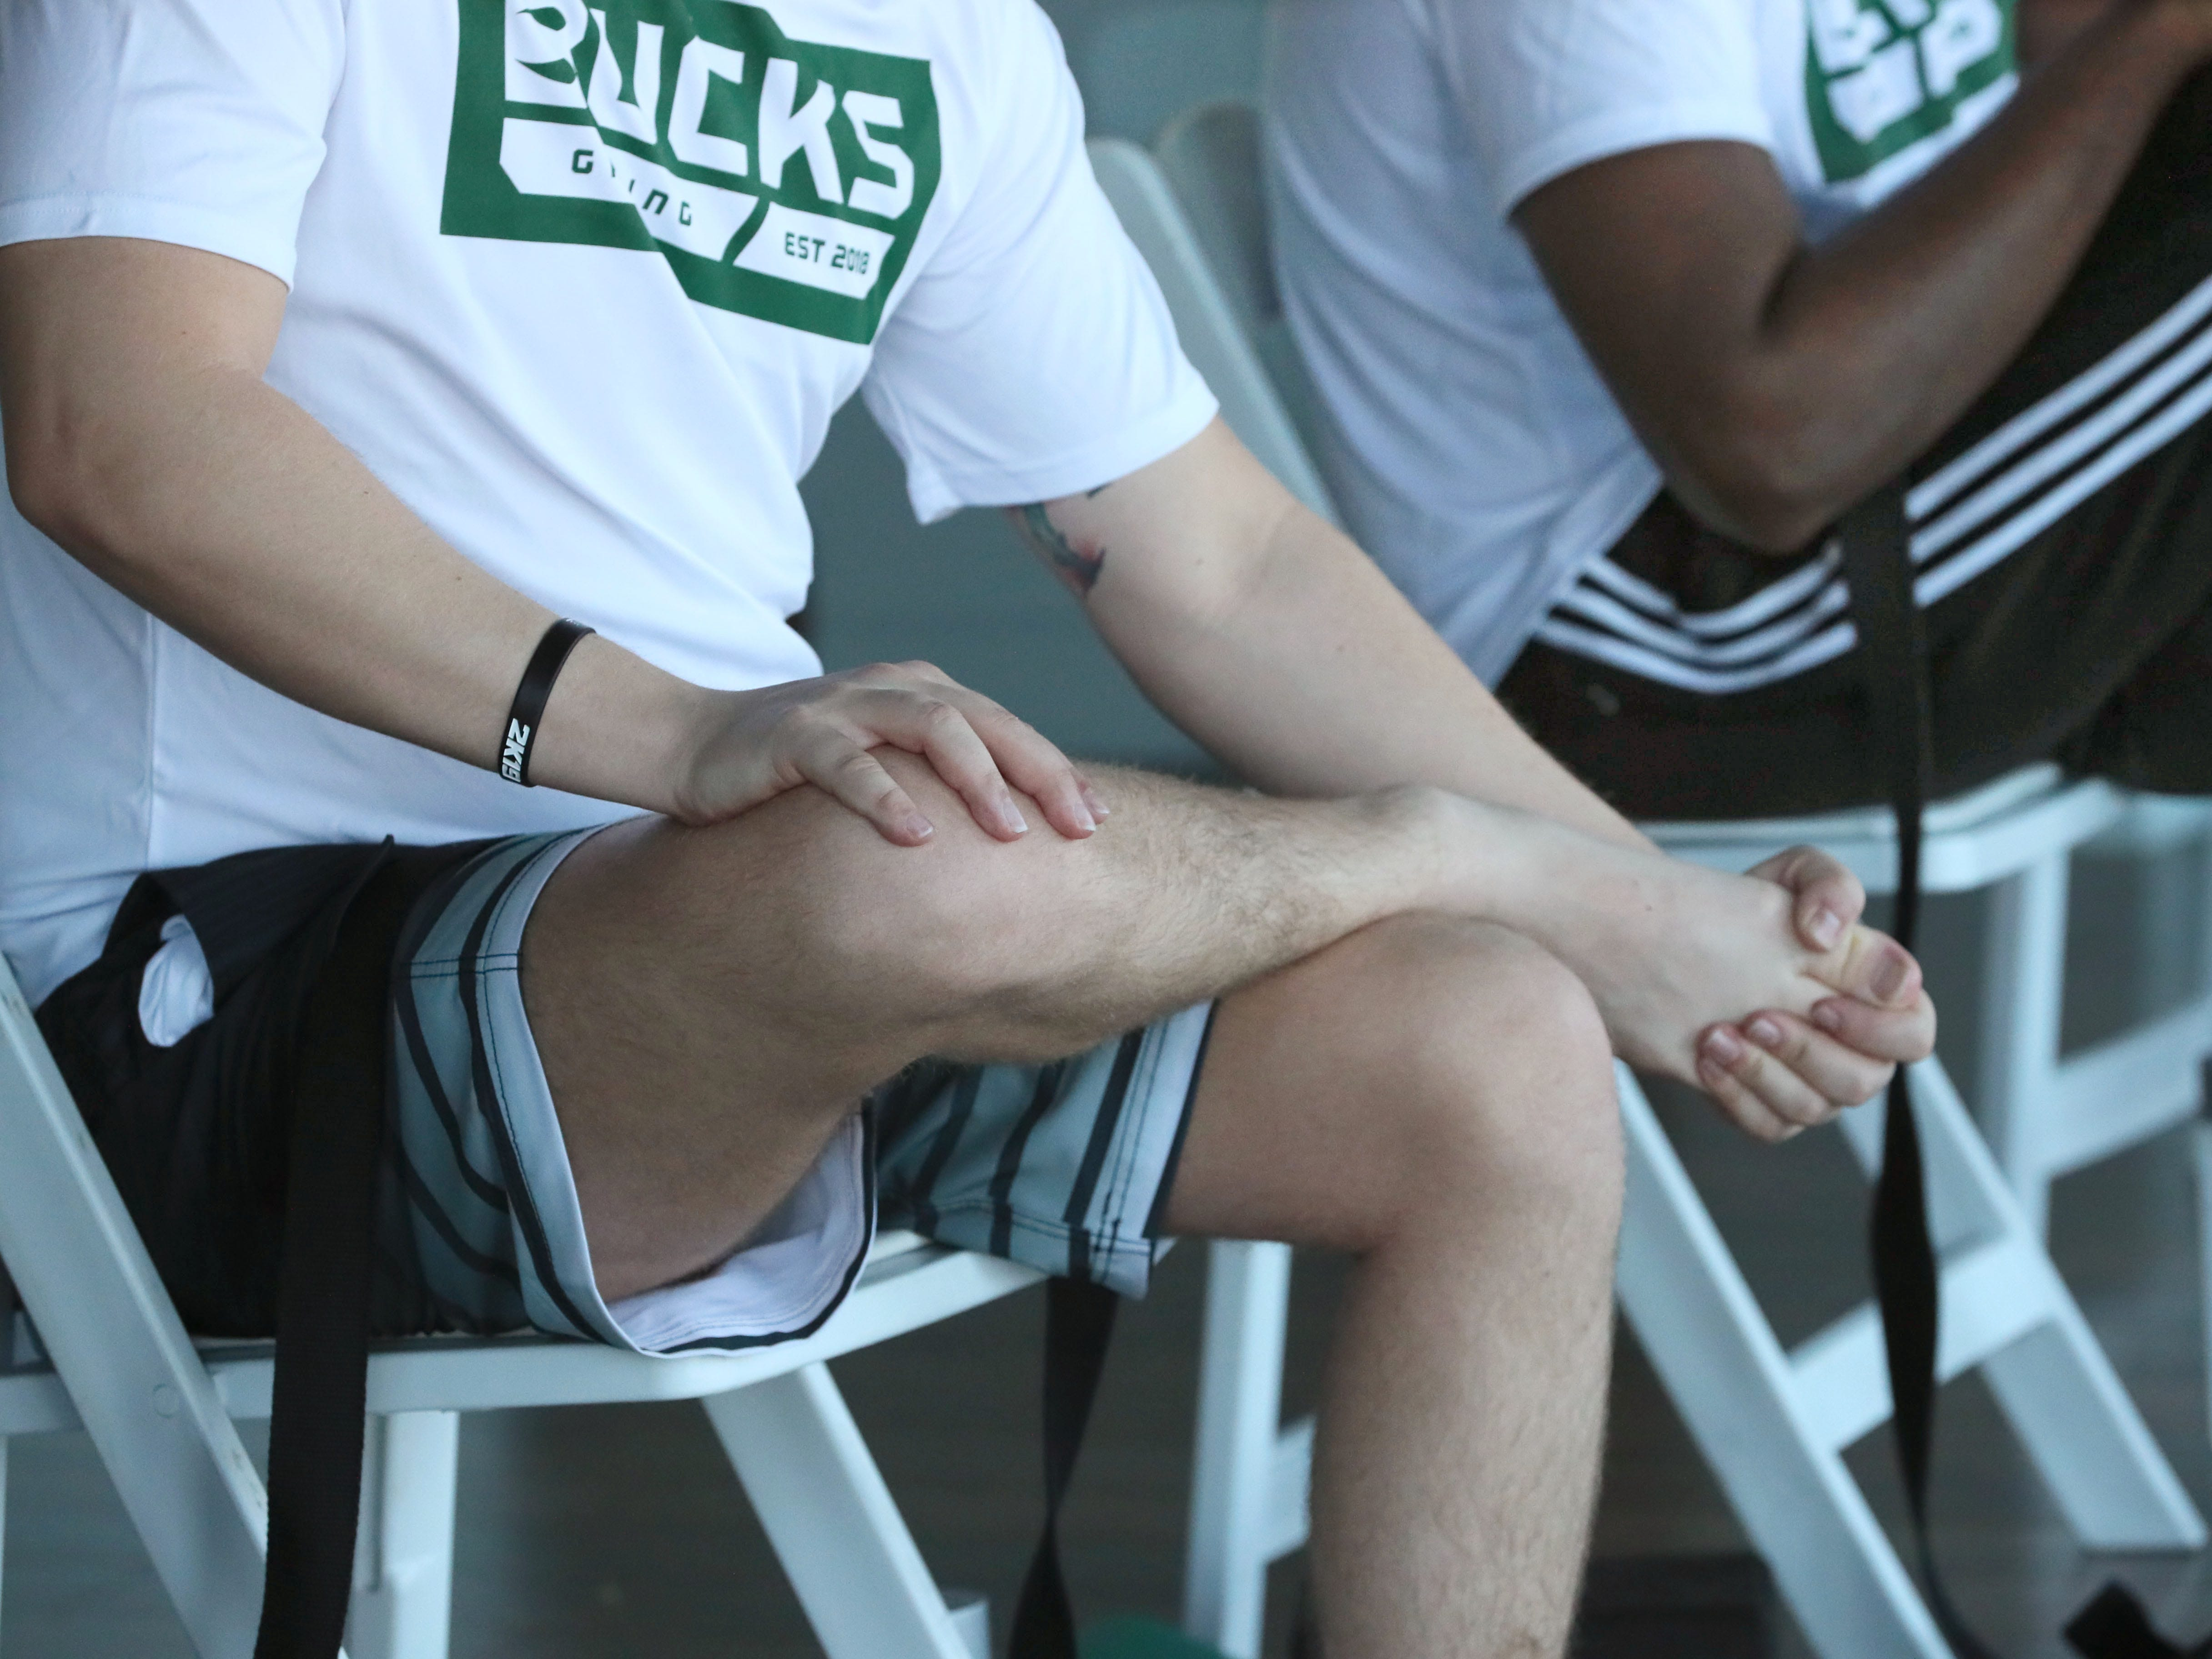 Team members learn how to move their legs while seated to relax their muscles.